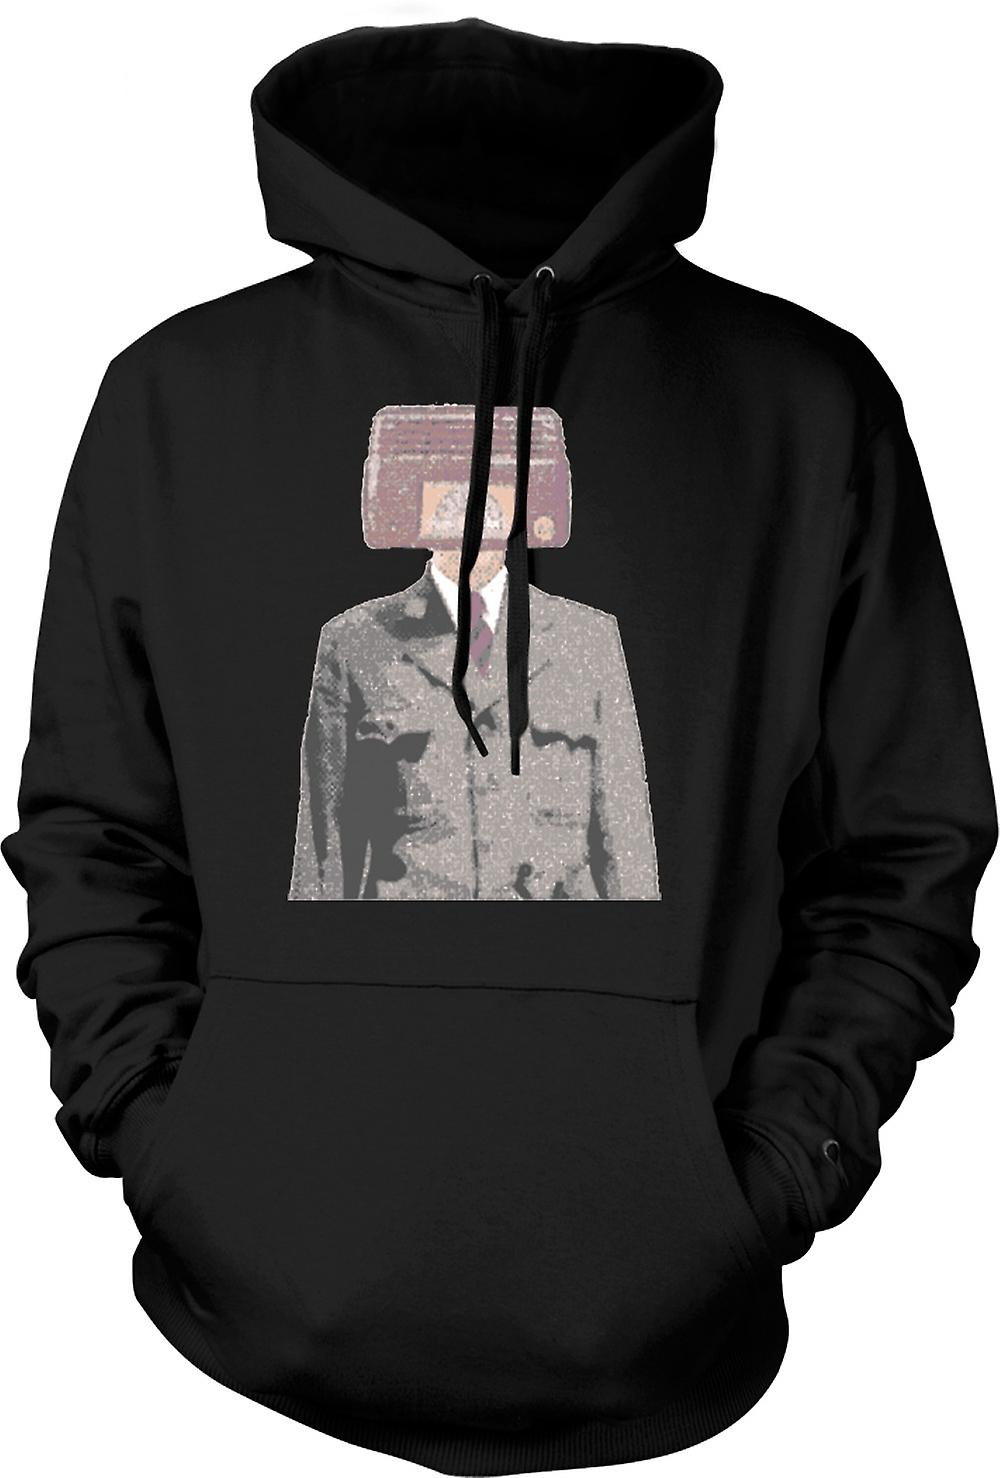 Kinder Hoodie - Radiohead - Pop-Art - Design